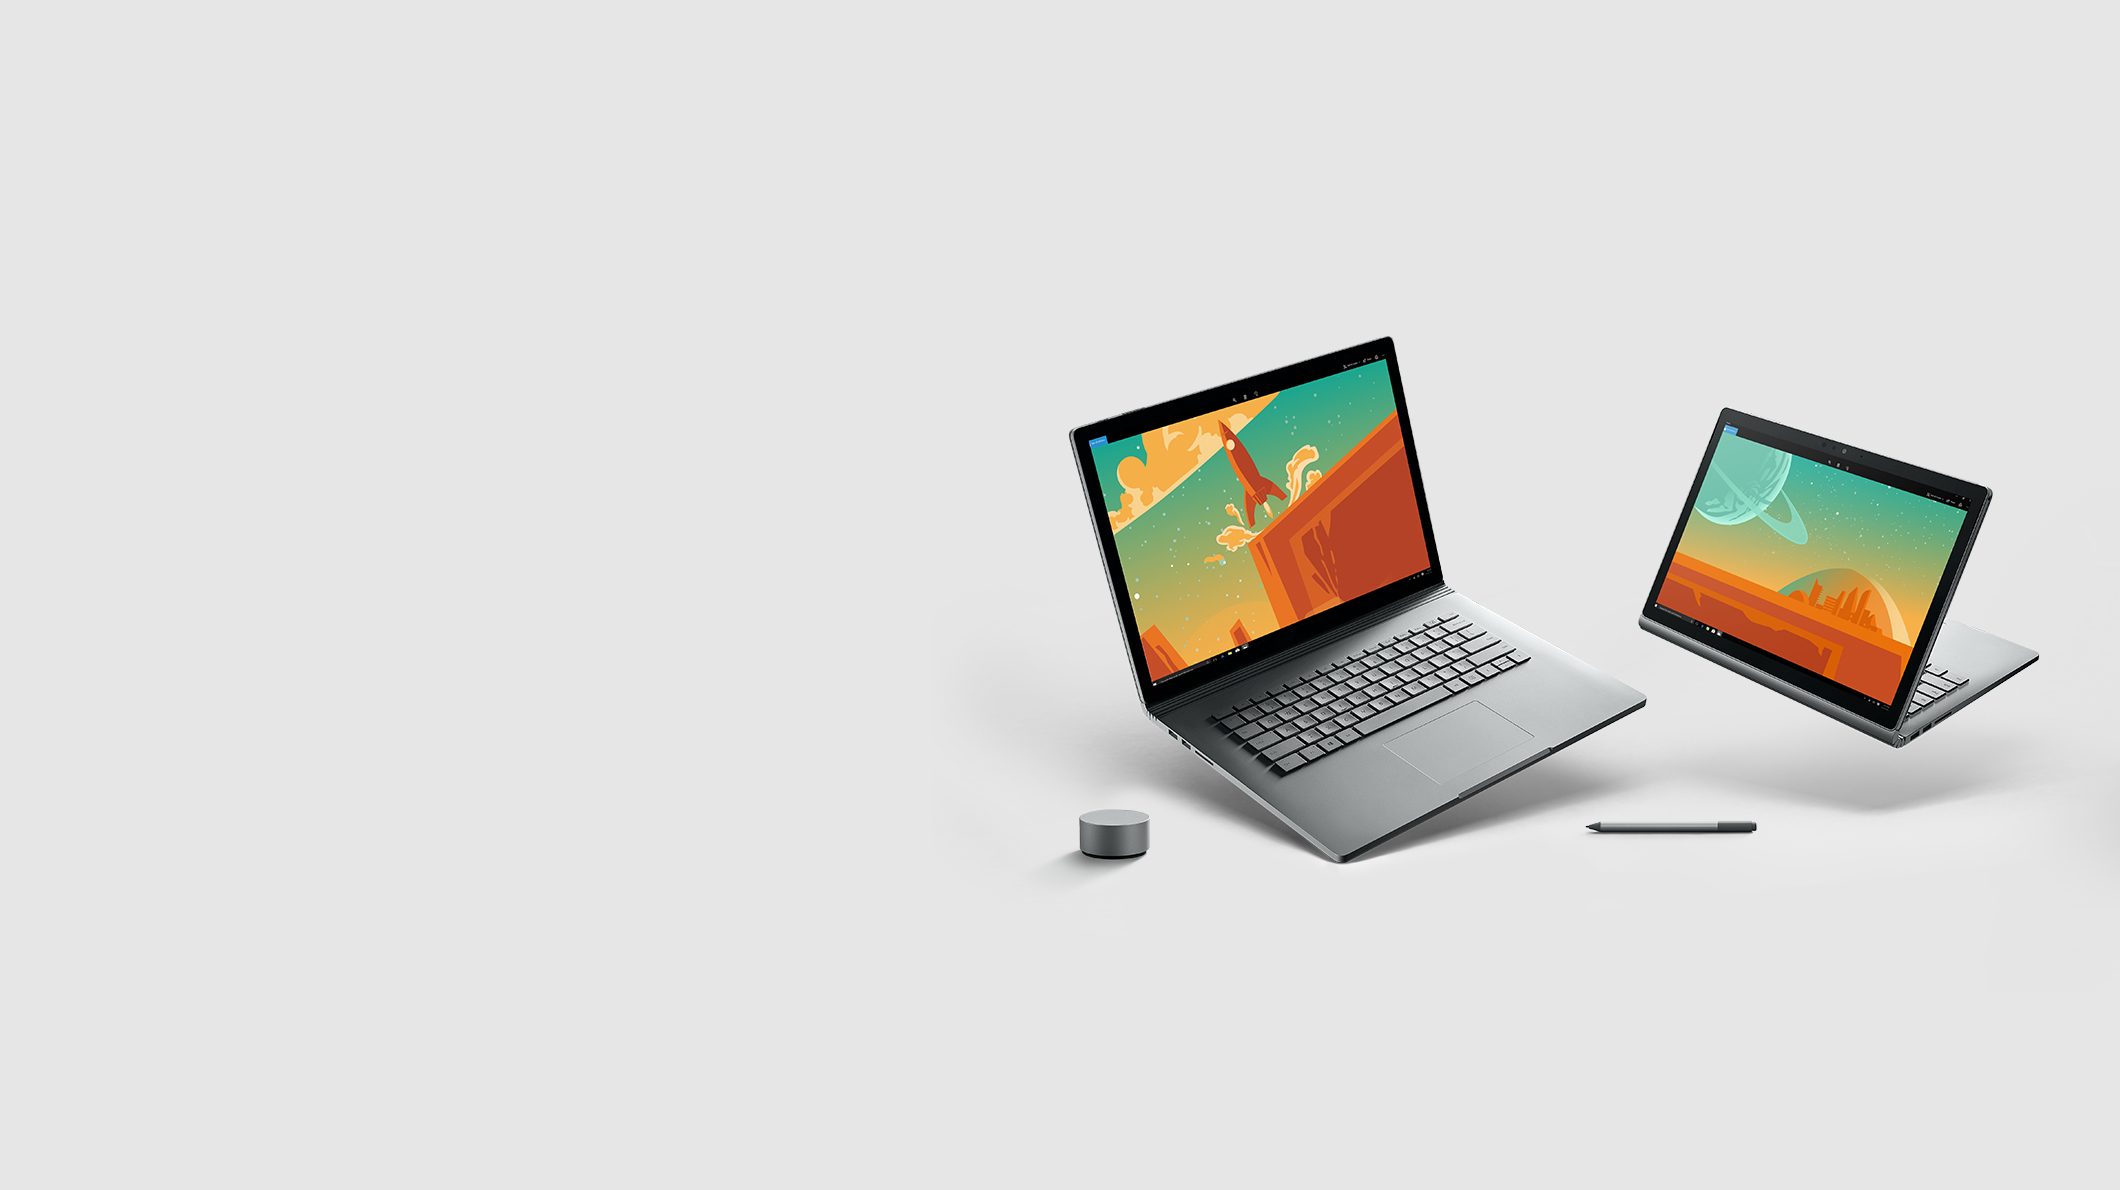 Two Surface Book 2 devices in different positions